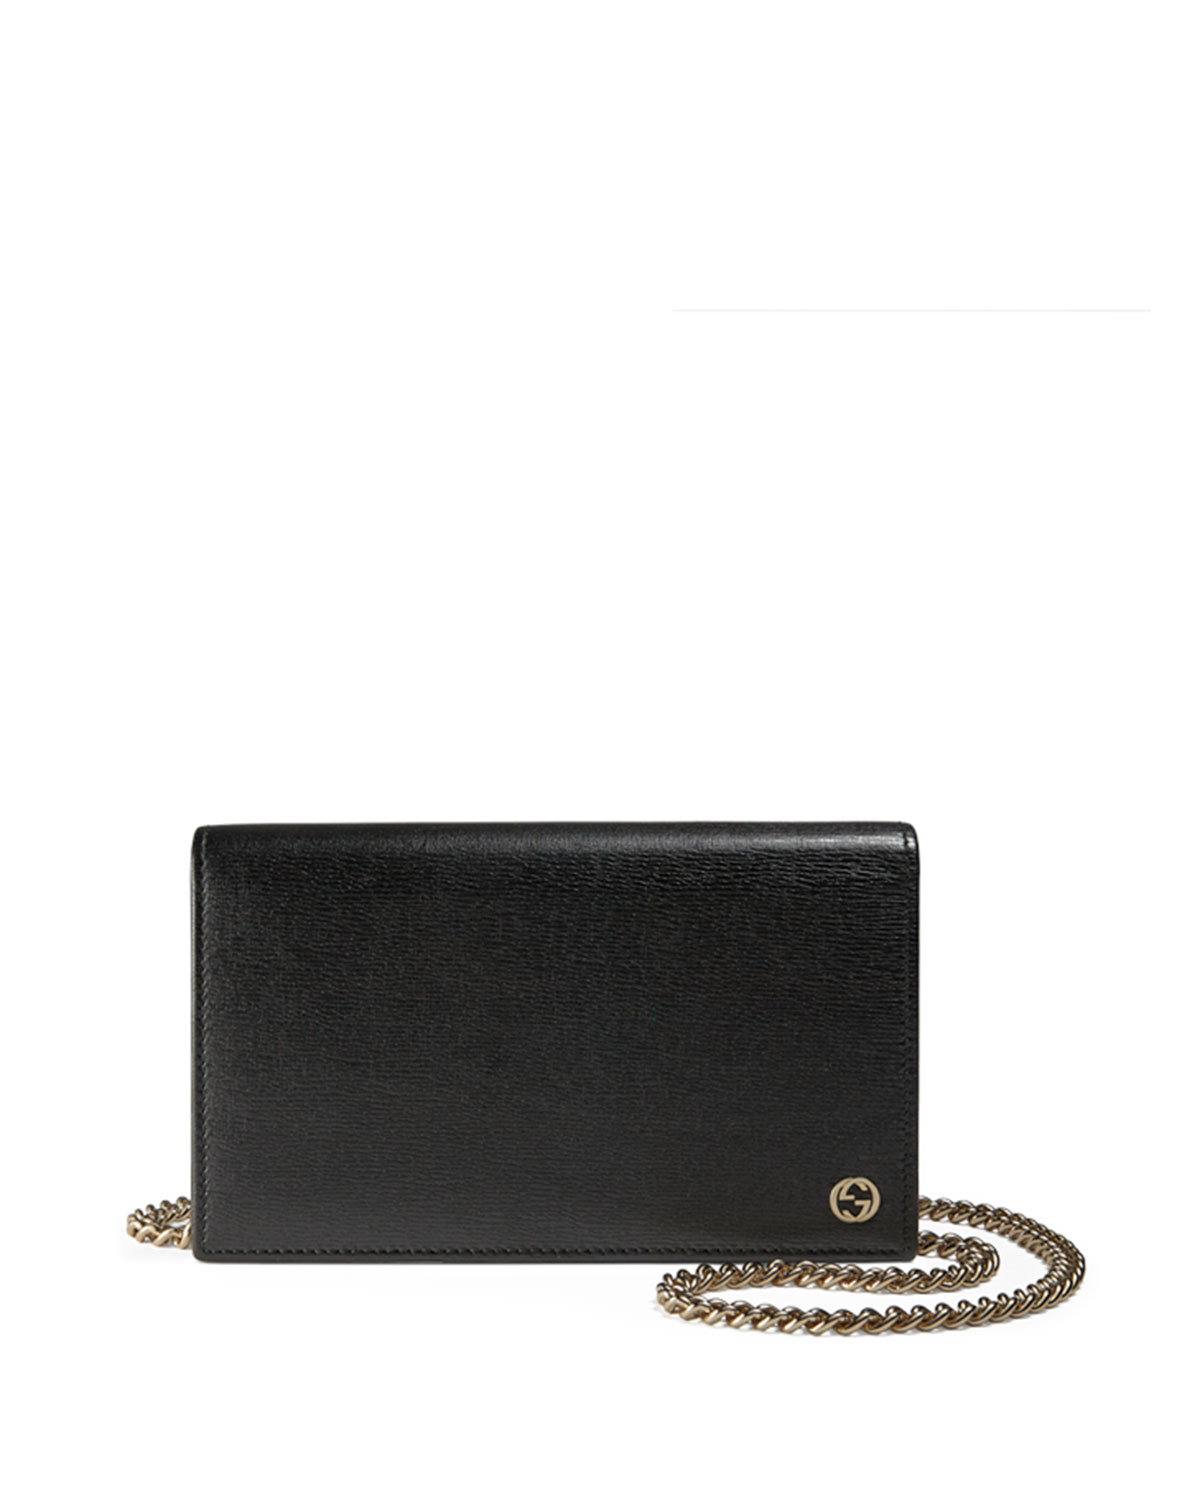 6ef6bcee1974 Gucci Betty Leather Chain Wallet, Black | Neiman Marcus